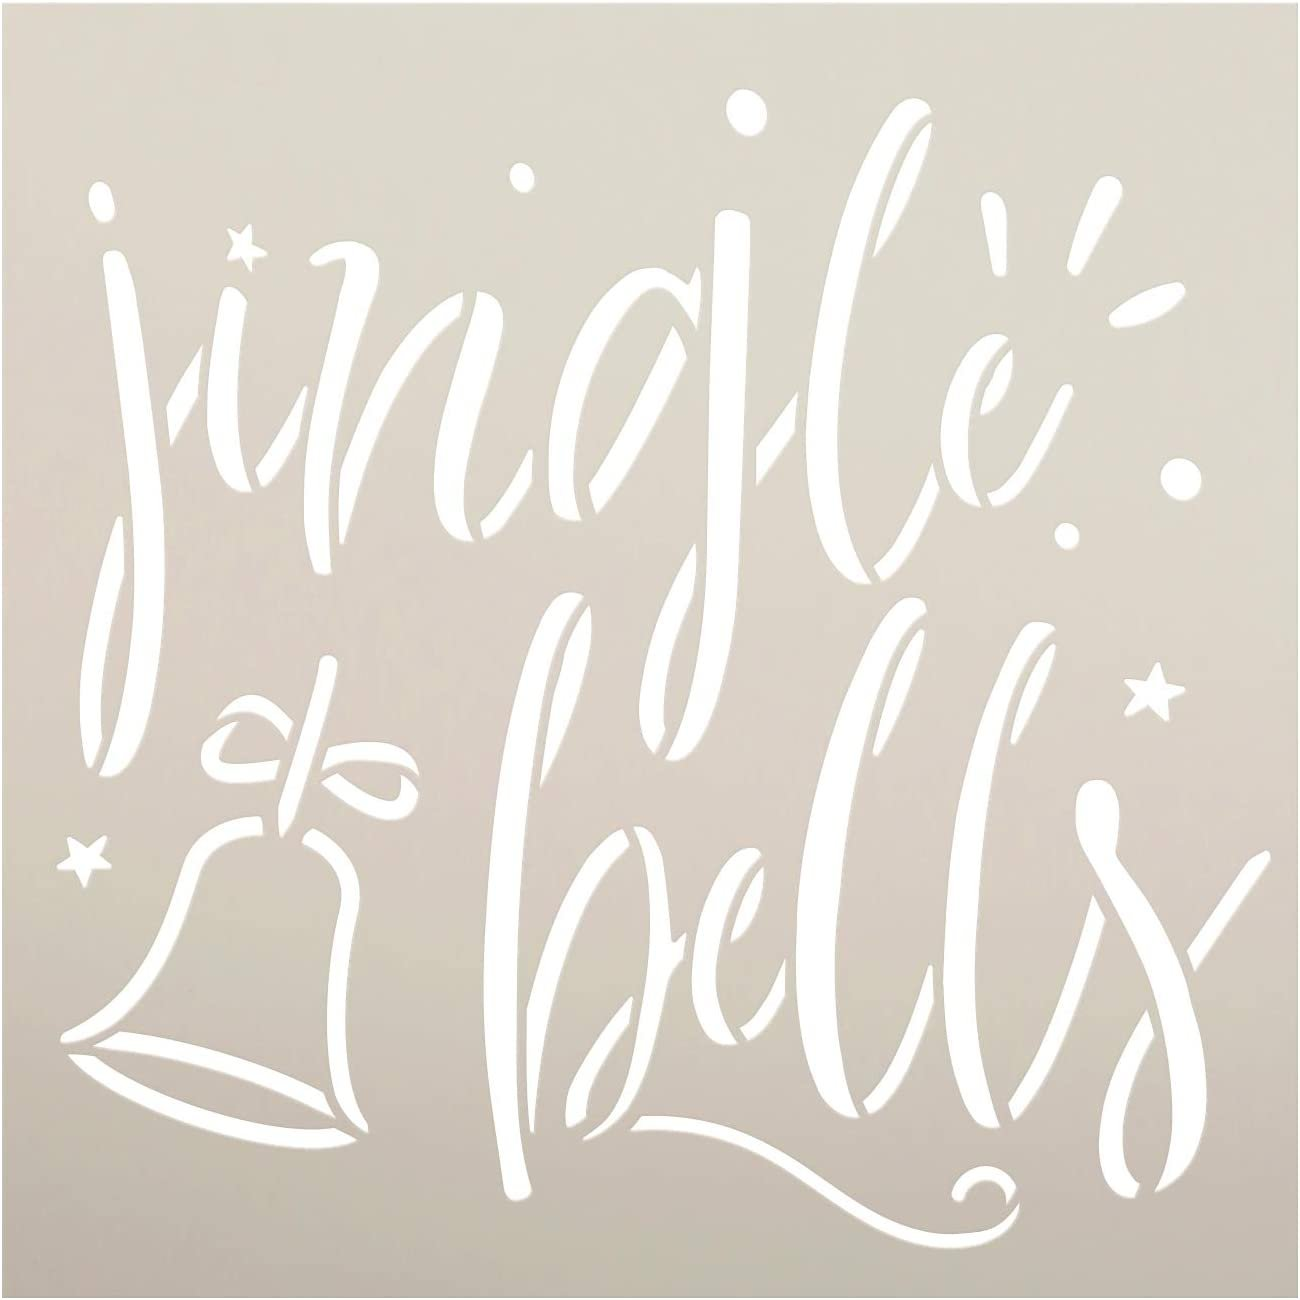 Jingle Bells Stencil by StudioR12   DIY Christmas Holiday Home Decor   Craft & Paint Wood Sign   Reusable Mylar Template   Star Winter Cursive Script Gift   Select Size